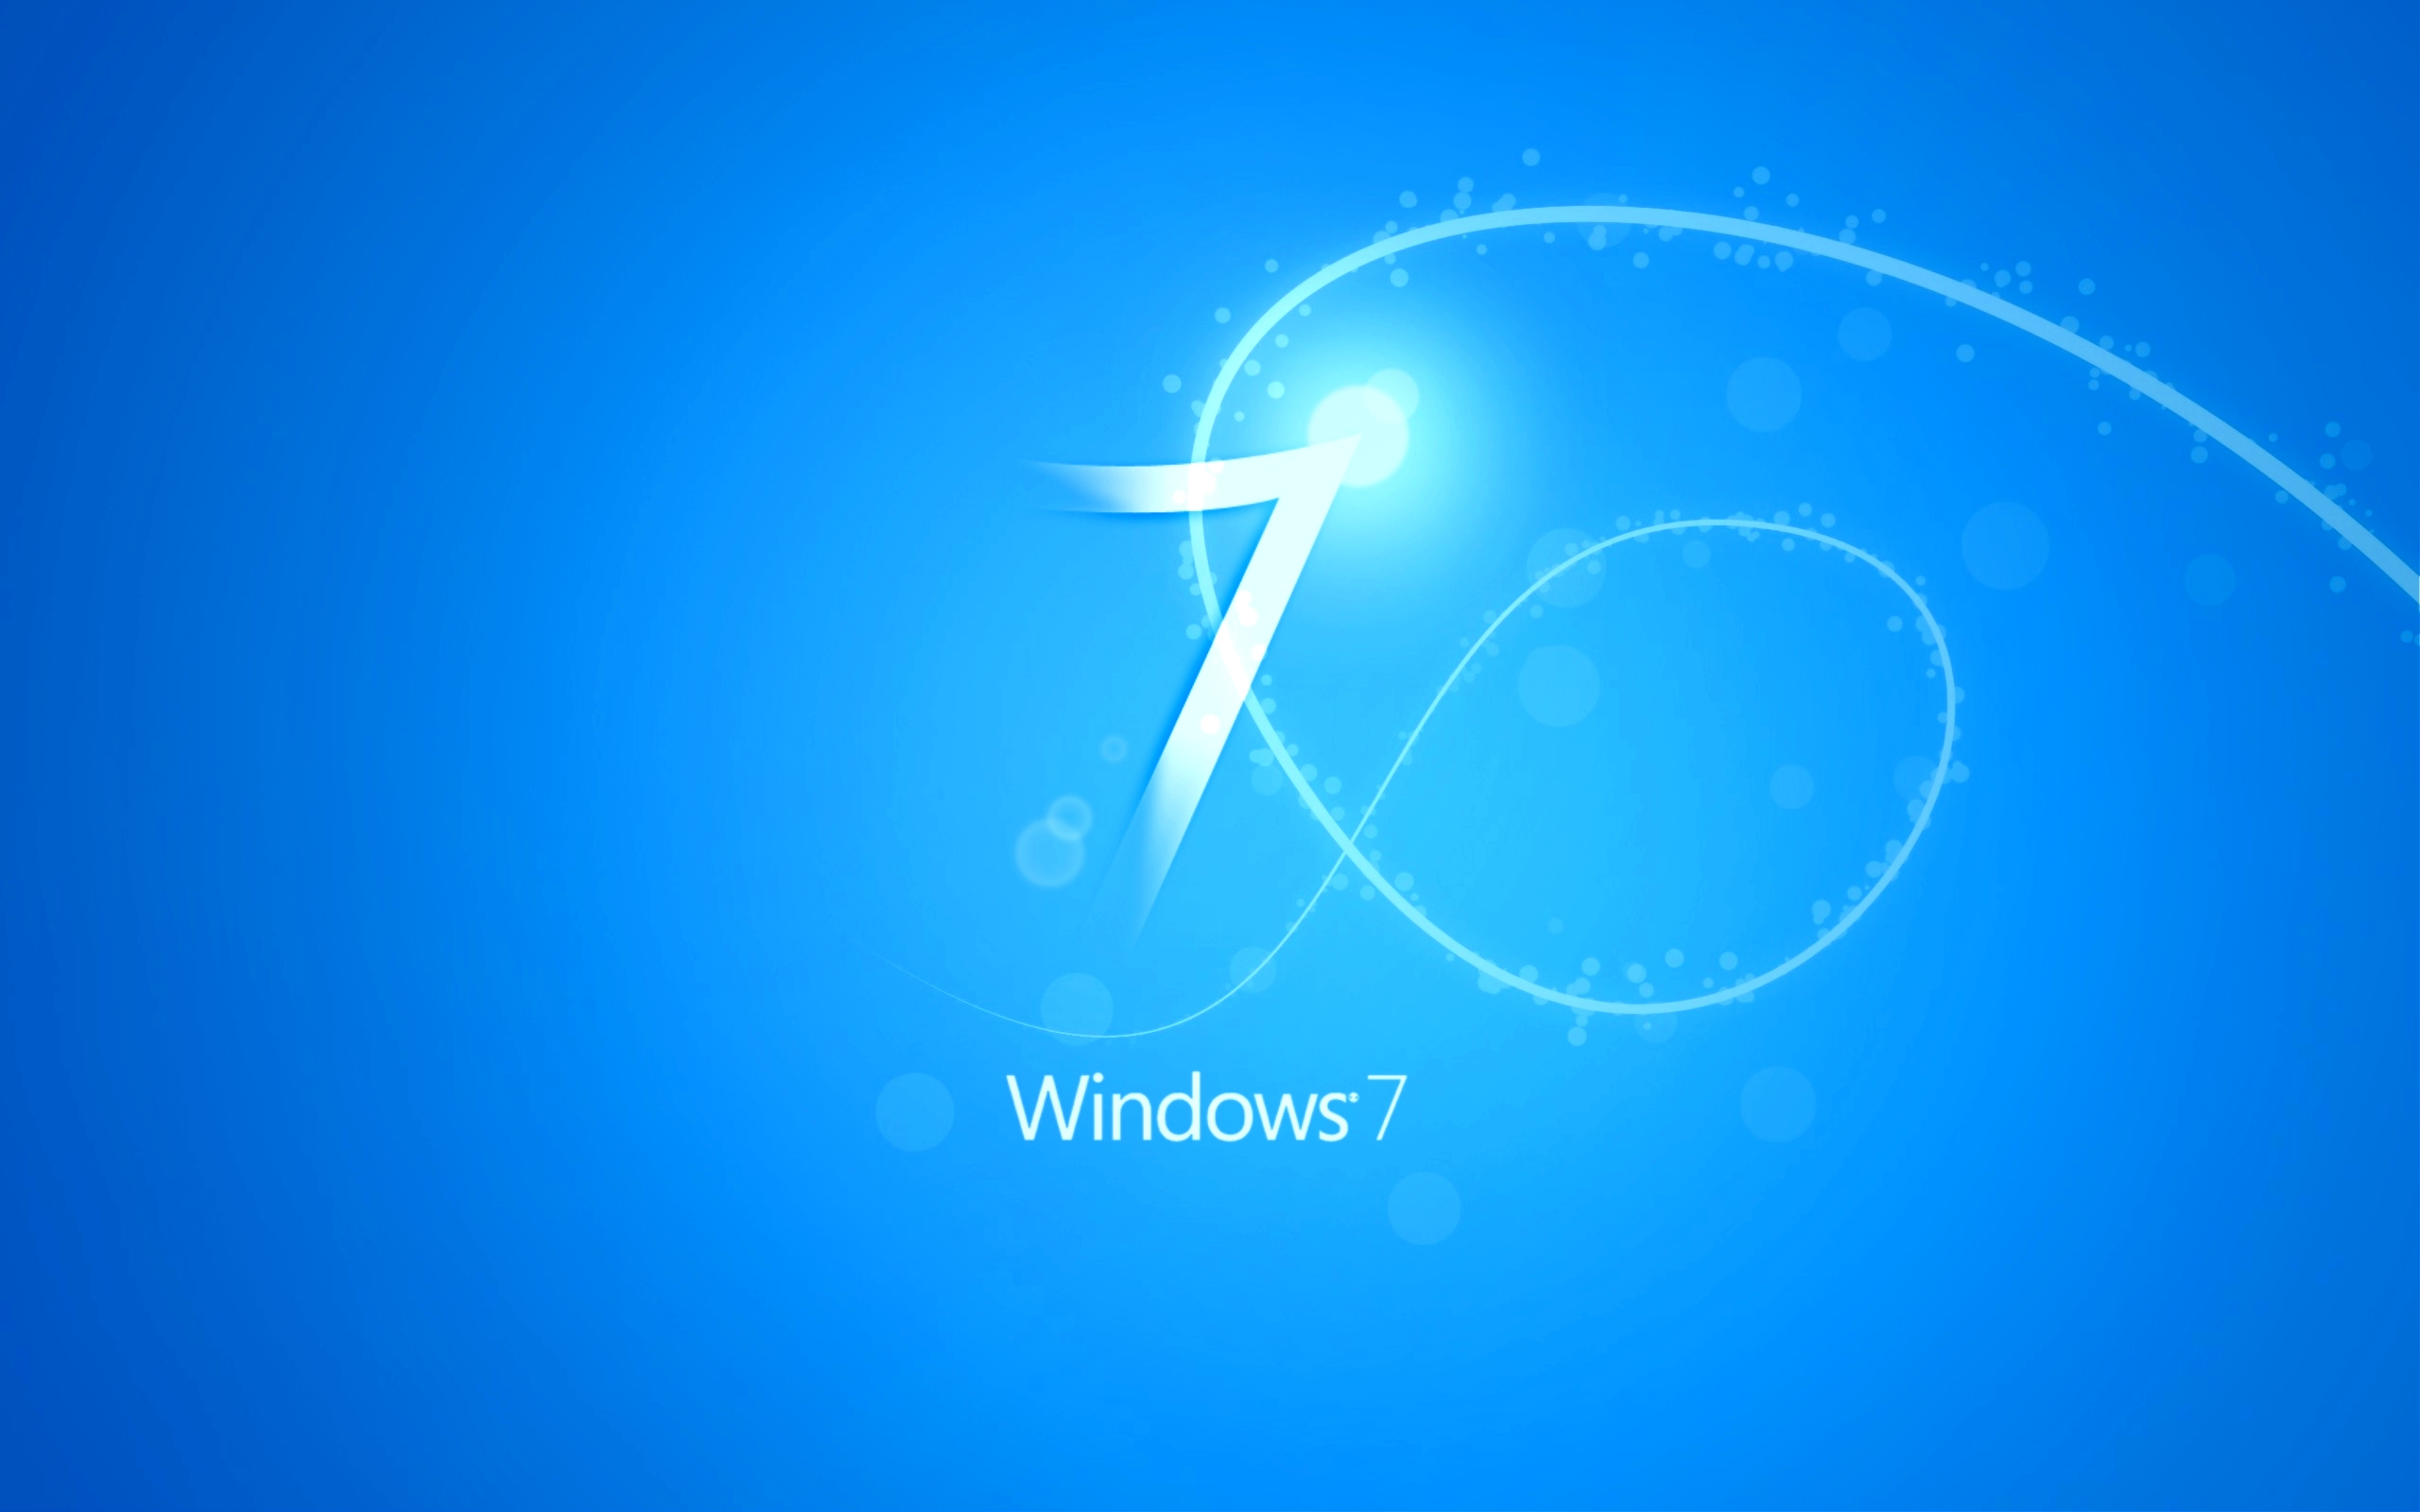 50 best windows 7 wallpapers in hd - Hd wallpapers for windows 7 1366x768 nature ...